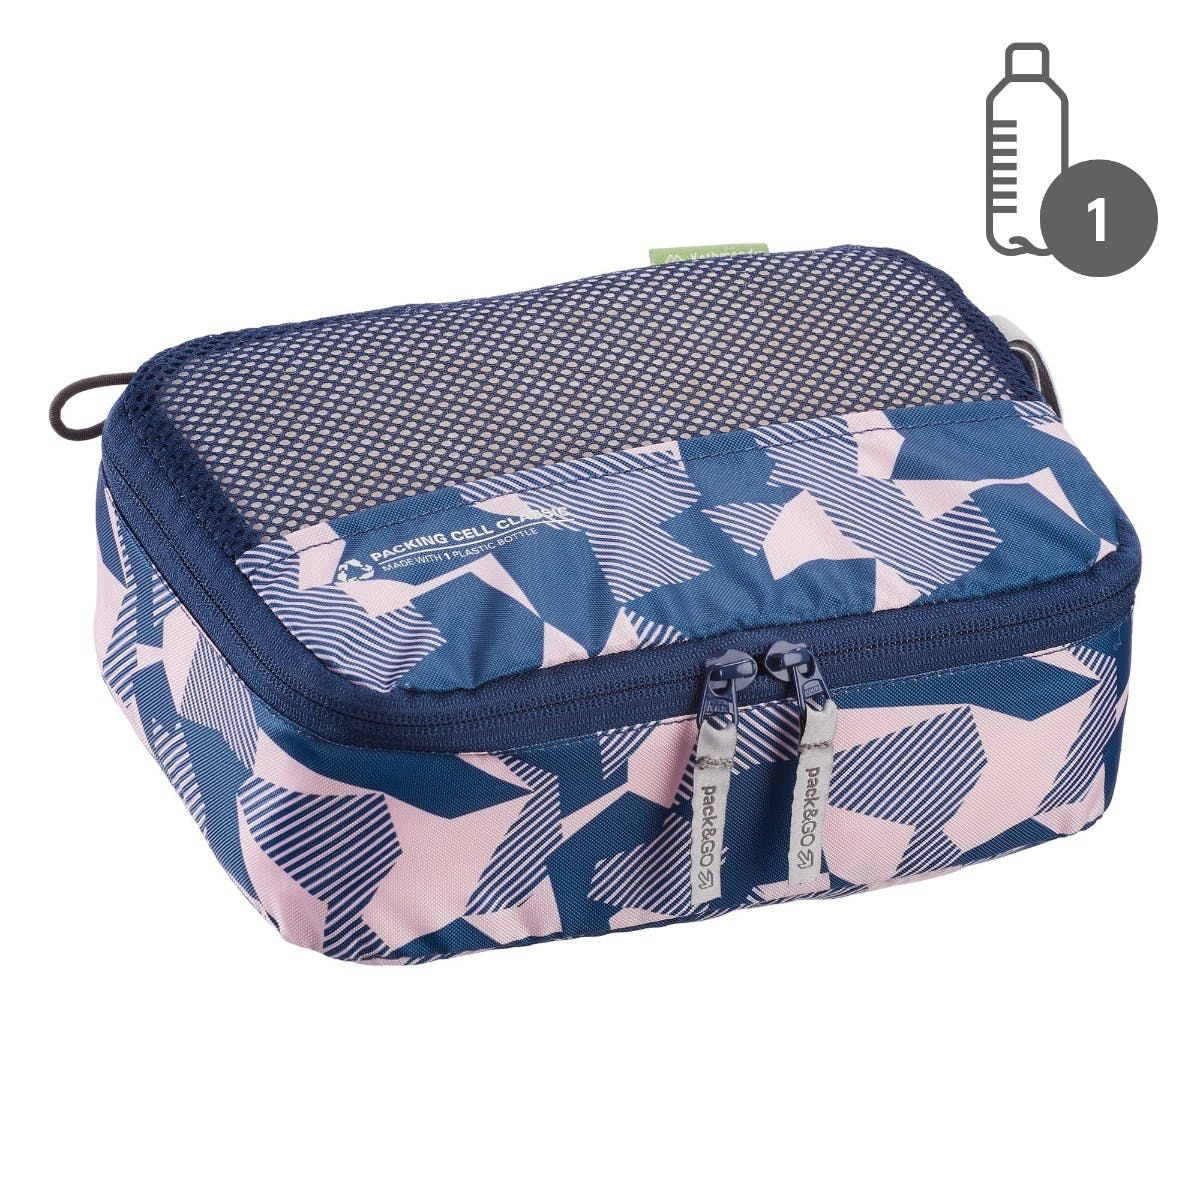 Packing Cells Travel Packing Cubes Travel Organisers For Luggage Suitcases